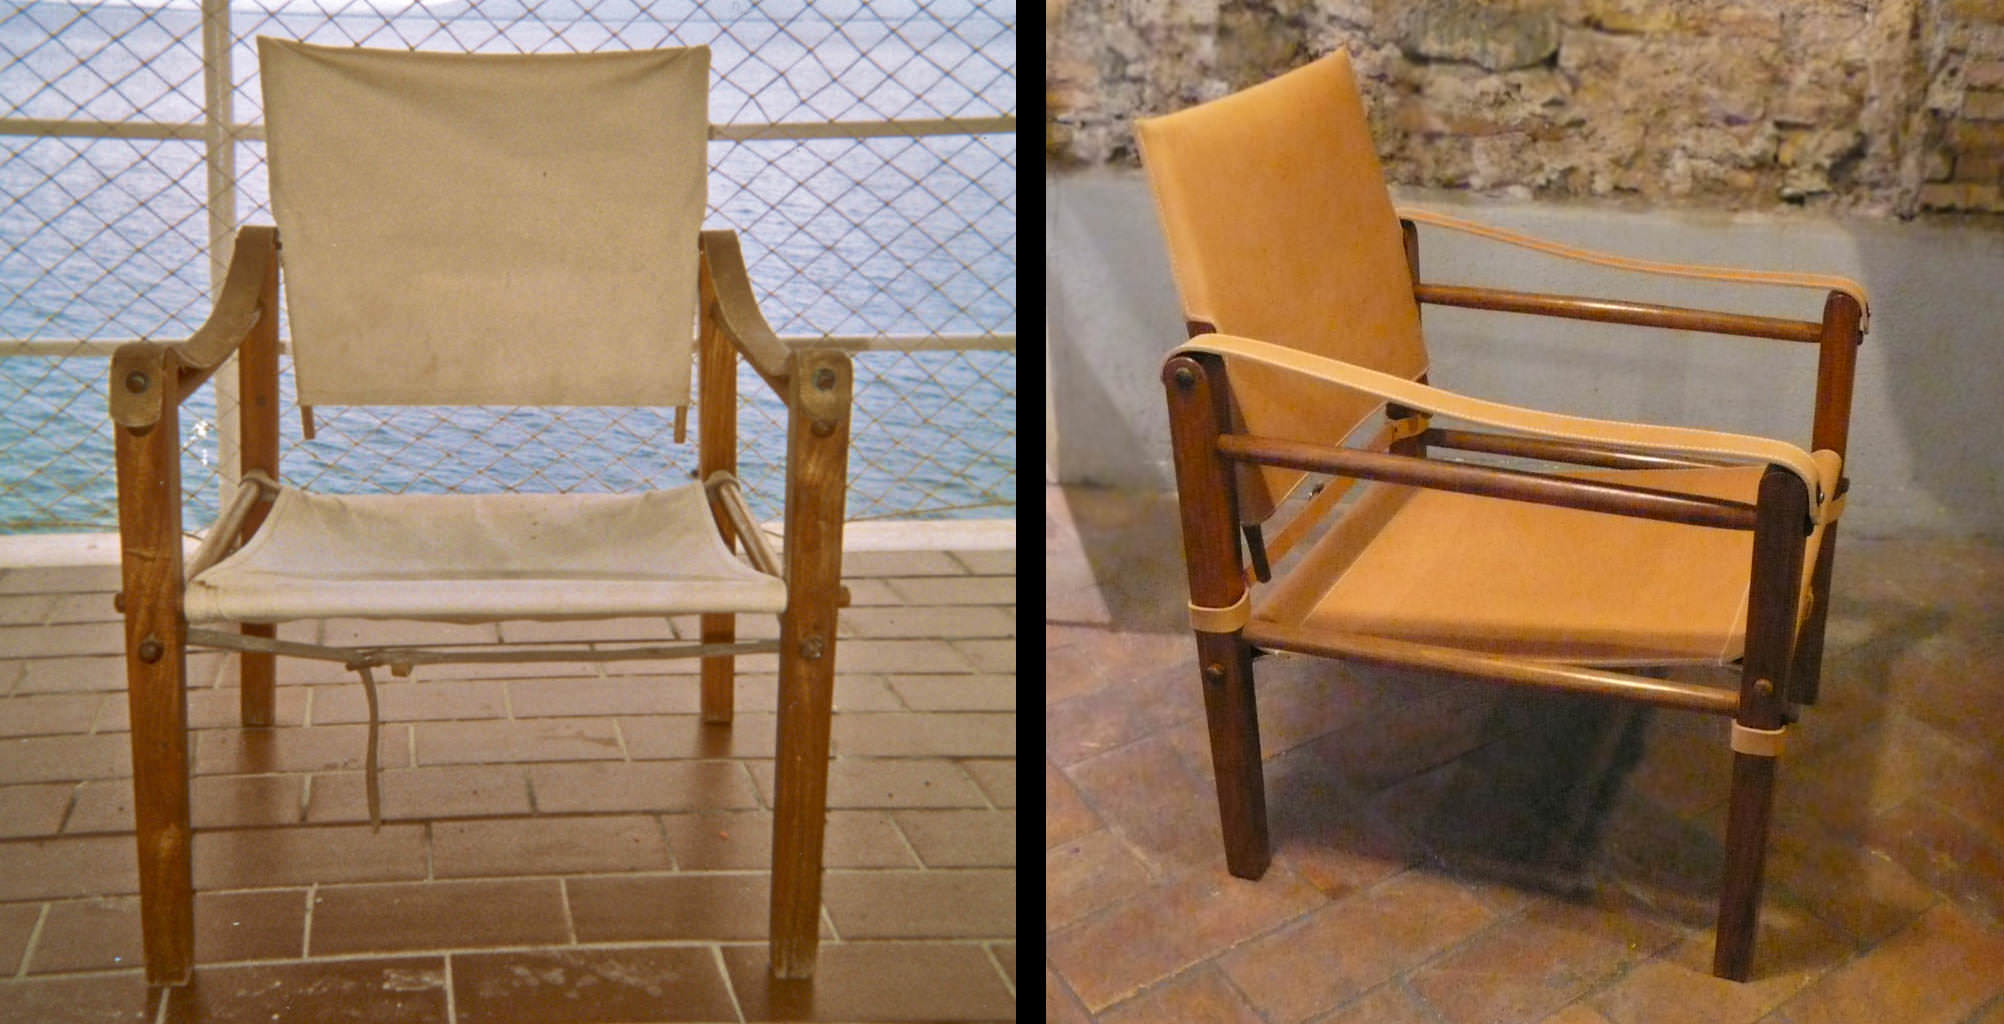 Field chair in natural leather and wood - before and after